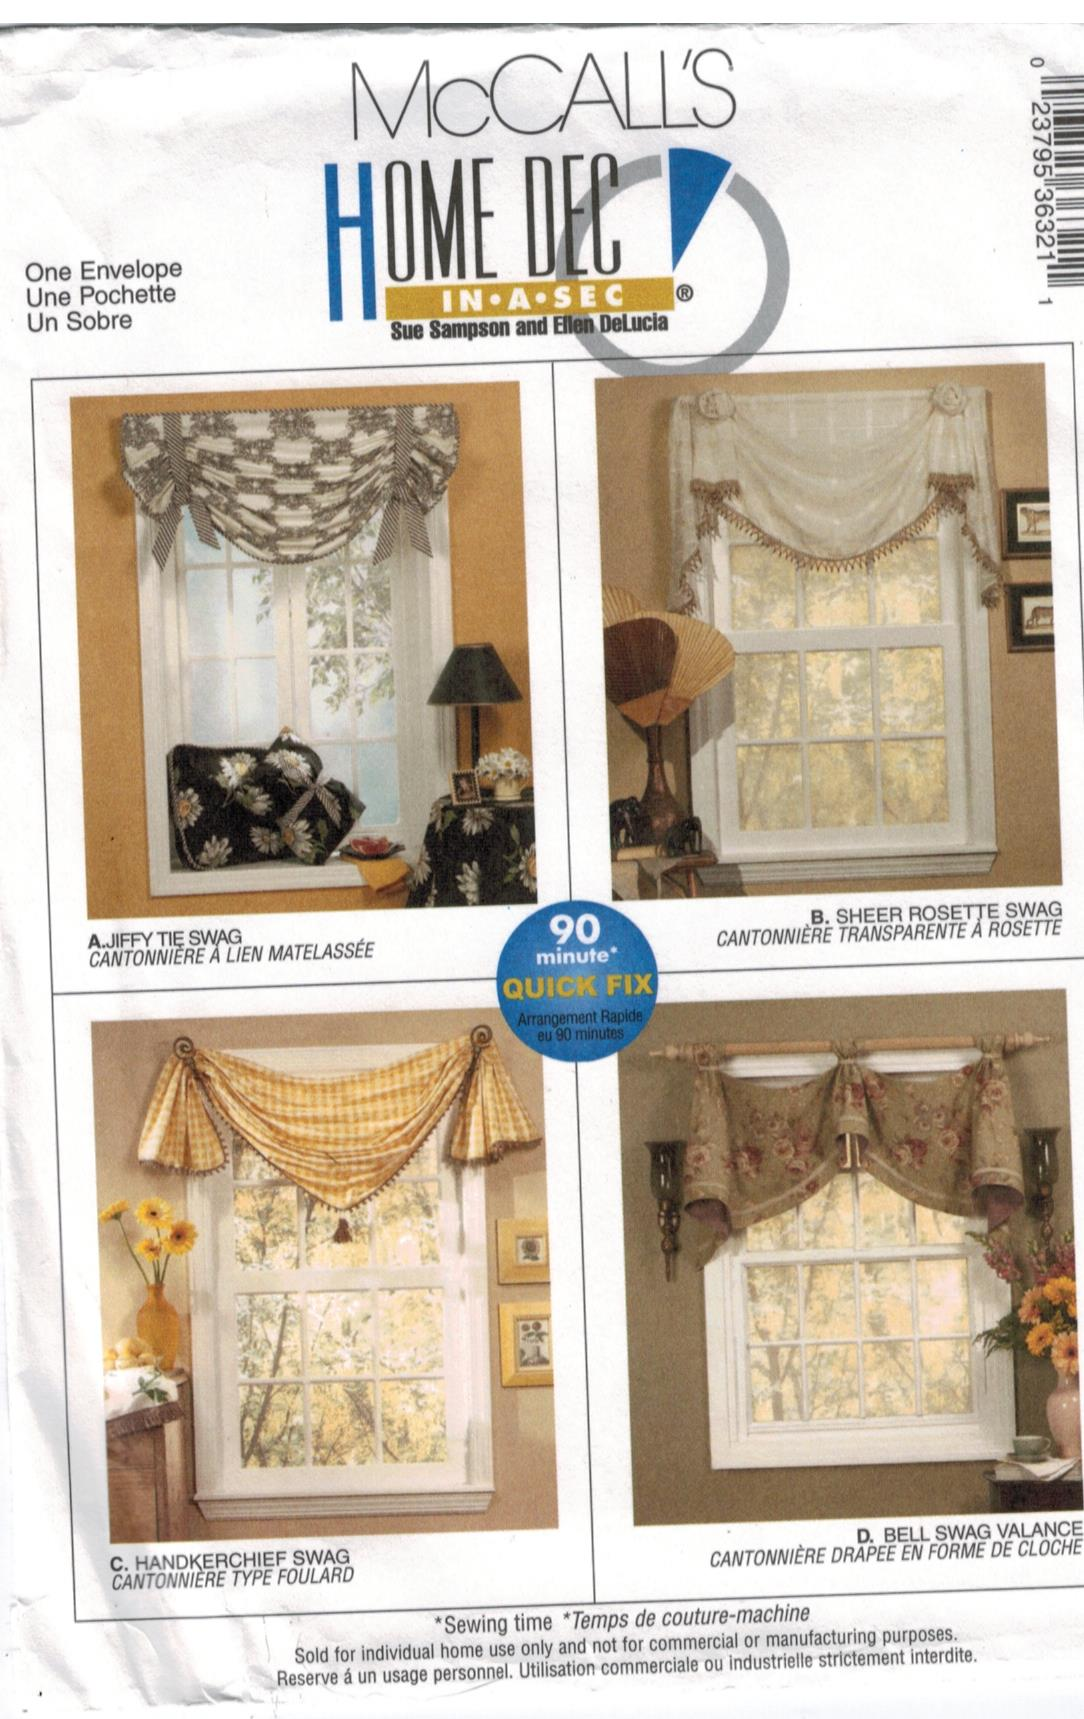 Mccalls Pattern 3632 Swags And Valance Window Treatment Easy Home Dec Sewing Pattern Heaven